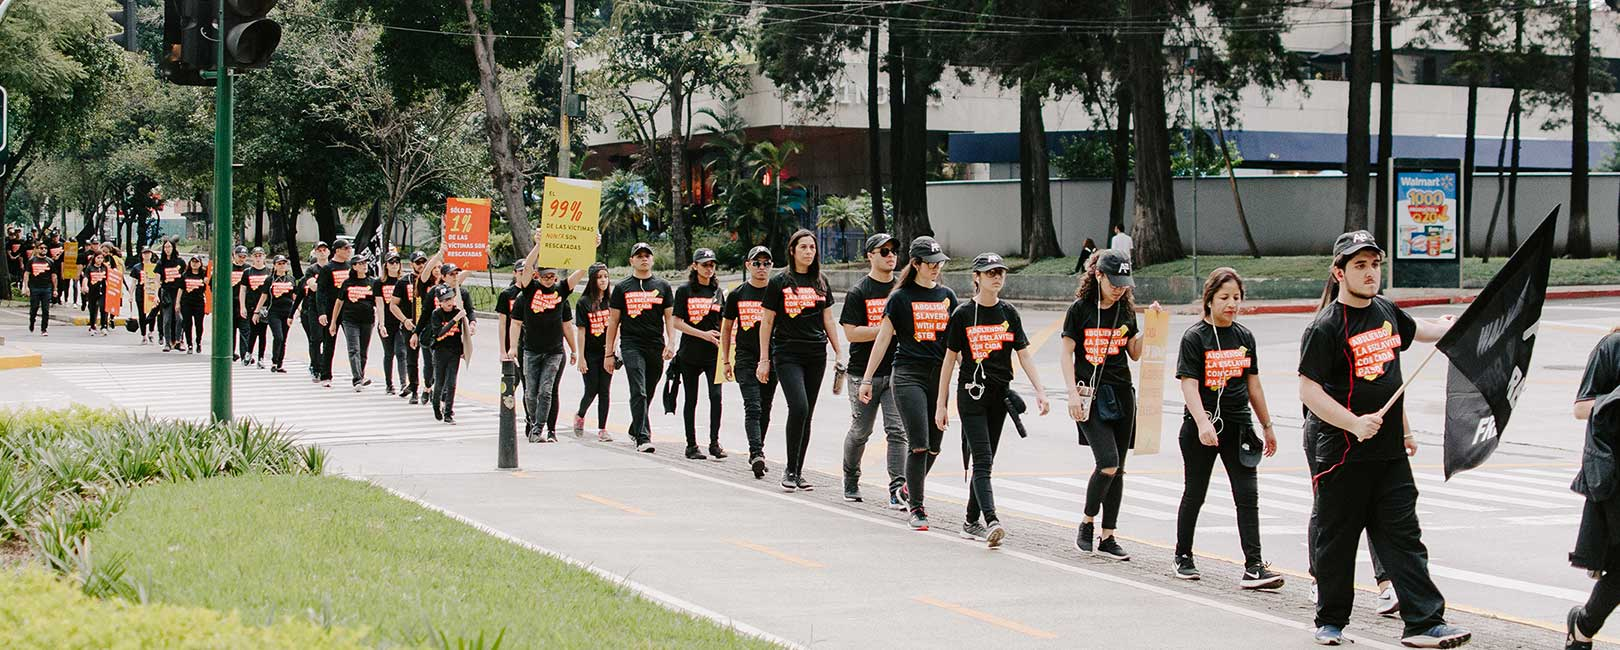 Line of Walkers: Walk for Freedom 2019